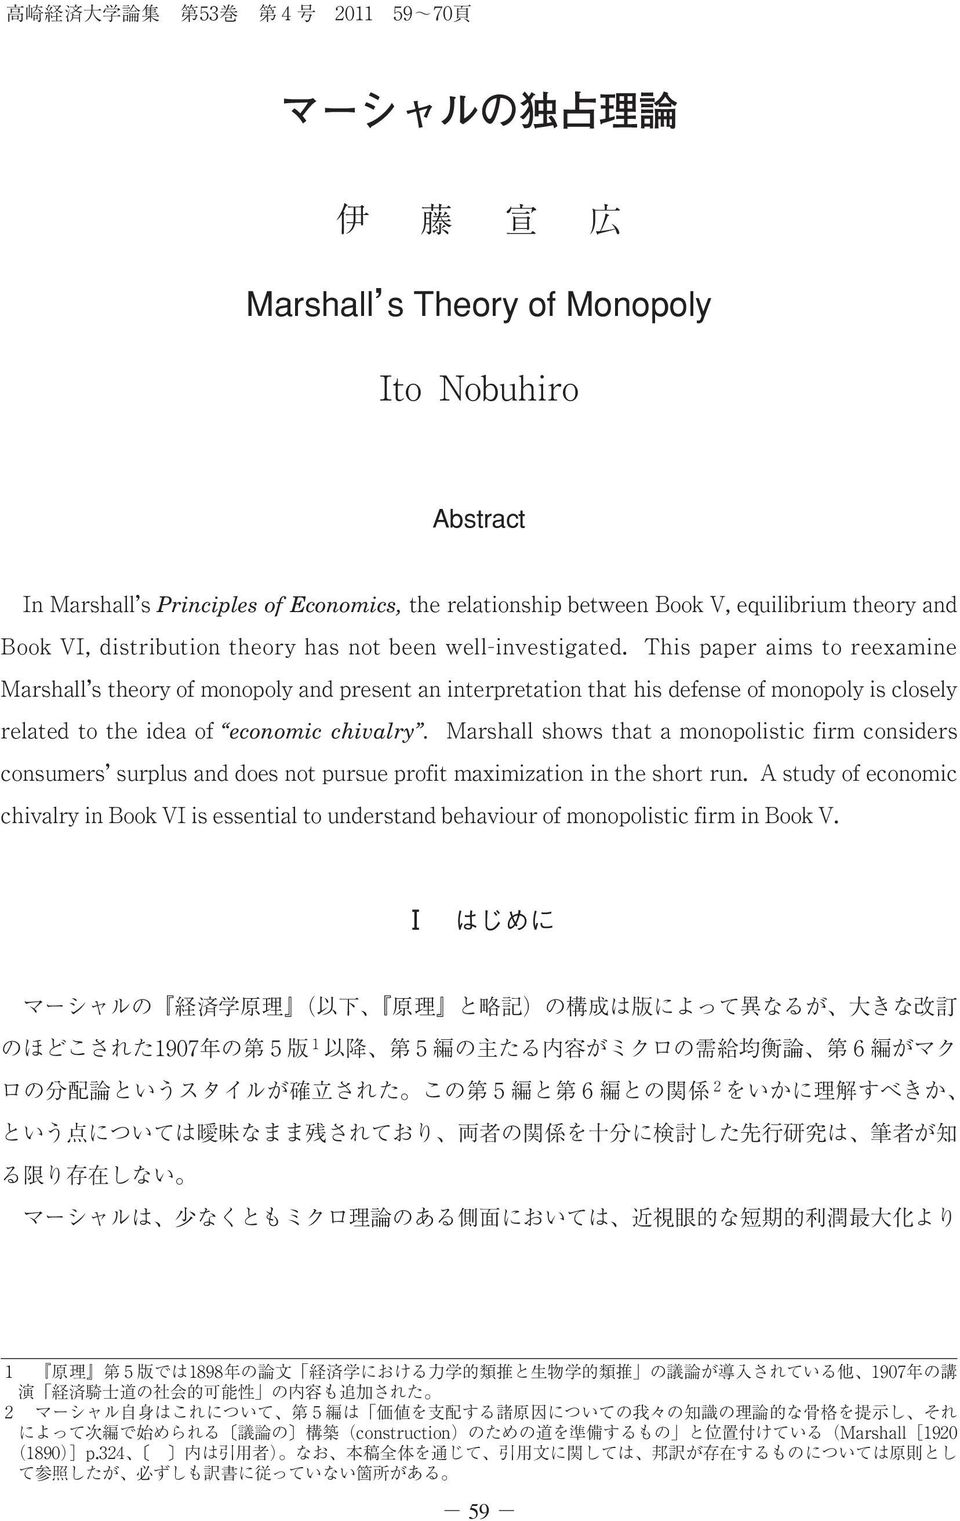 This paper aims to reexamine Marshall s theory of monopoly and present an interpretation that his defense of monopoly is closely related to the idea of